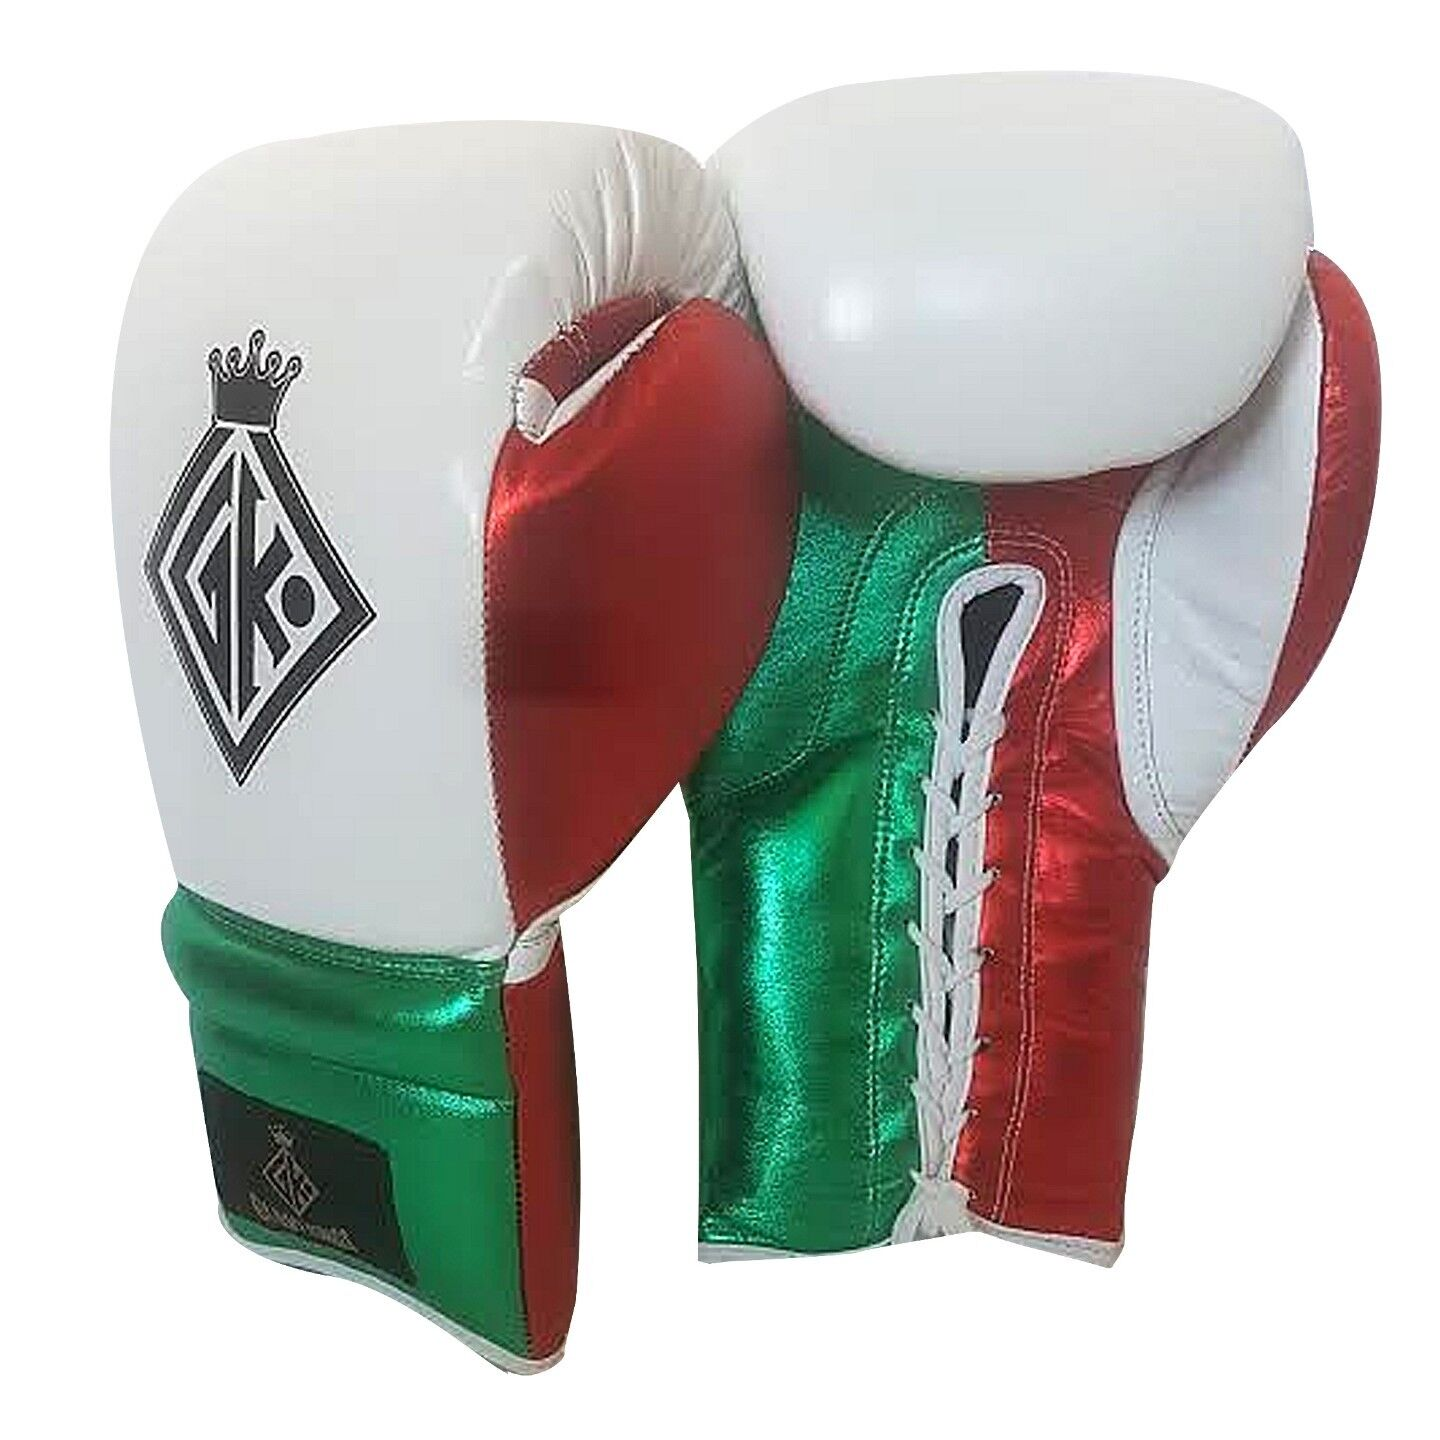 MEXICAN CANELO BOXING GLOVES GLOVES GLOVES BAG PAD UFC INSPIROT BY GRANT WINNING CLETO REYES 5618e3